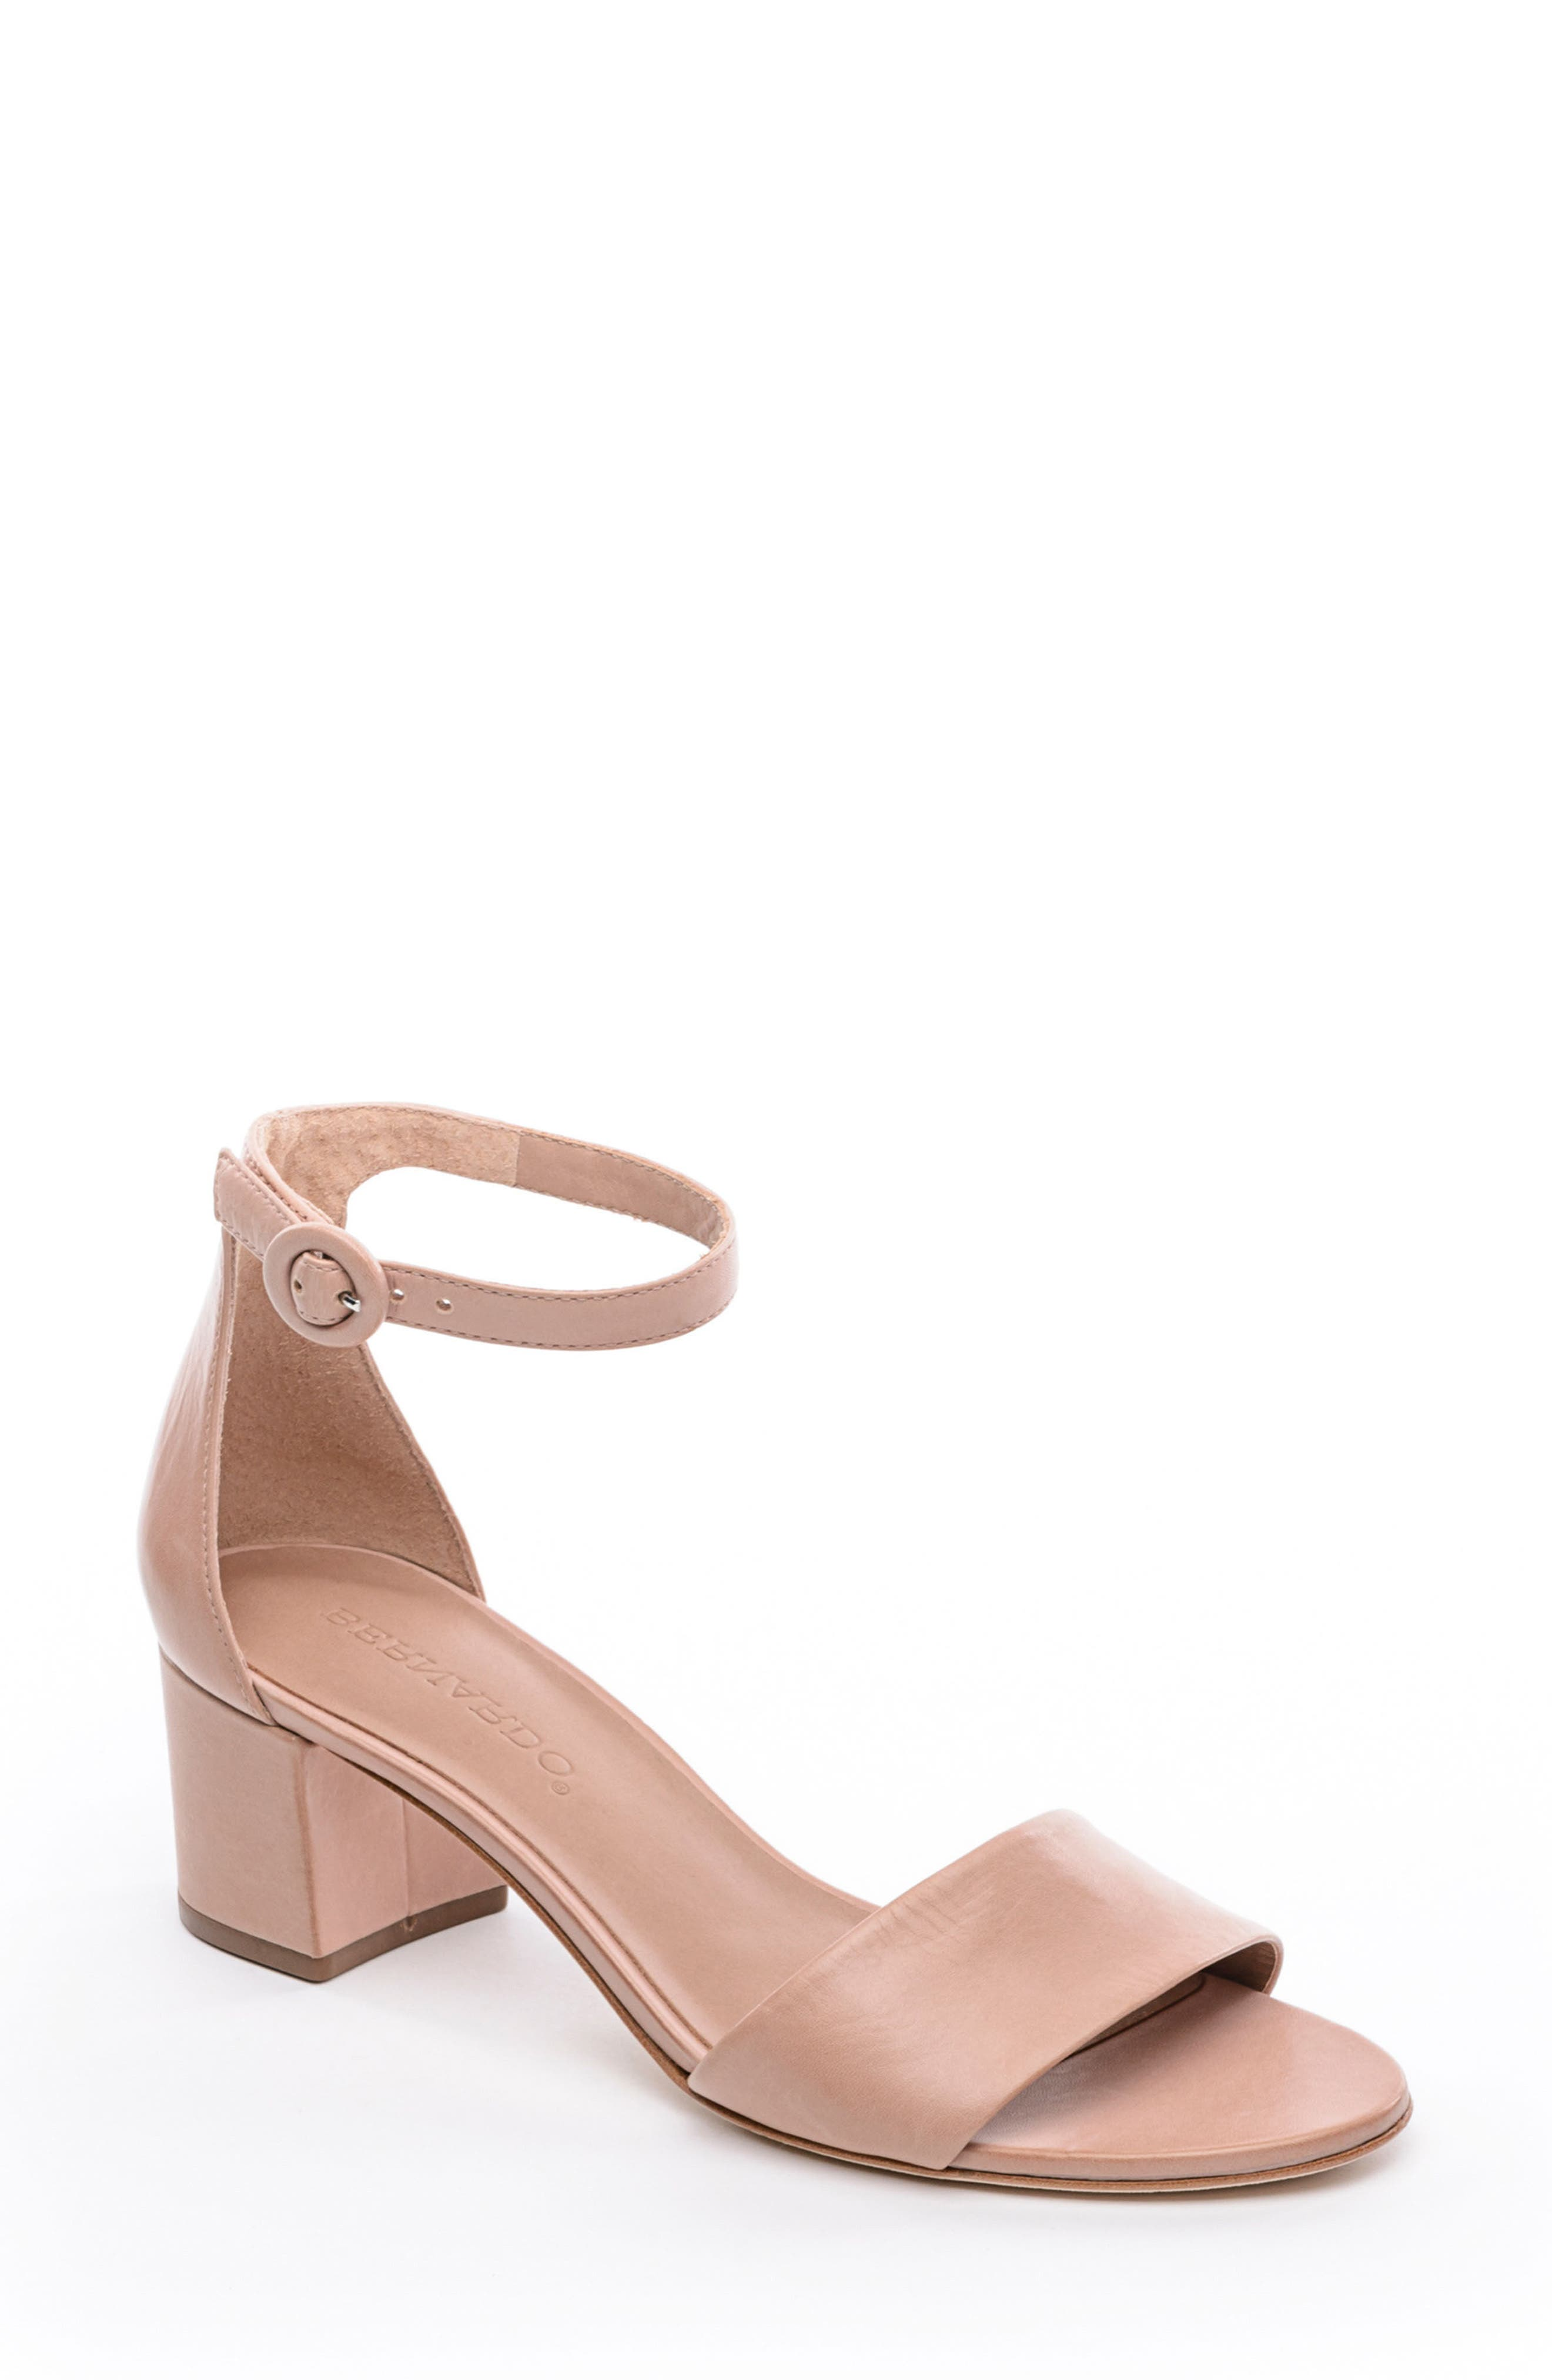 BERNARDO, Belinda Ankle Strap Sandal, Main thumbnail 1, color, BLUSH LEATHER